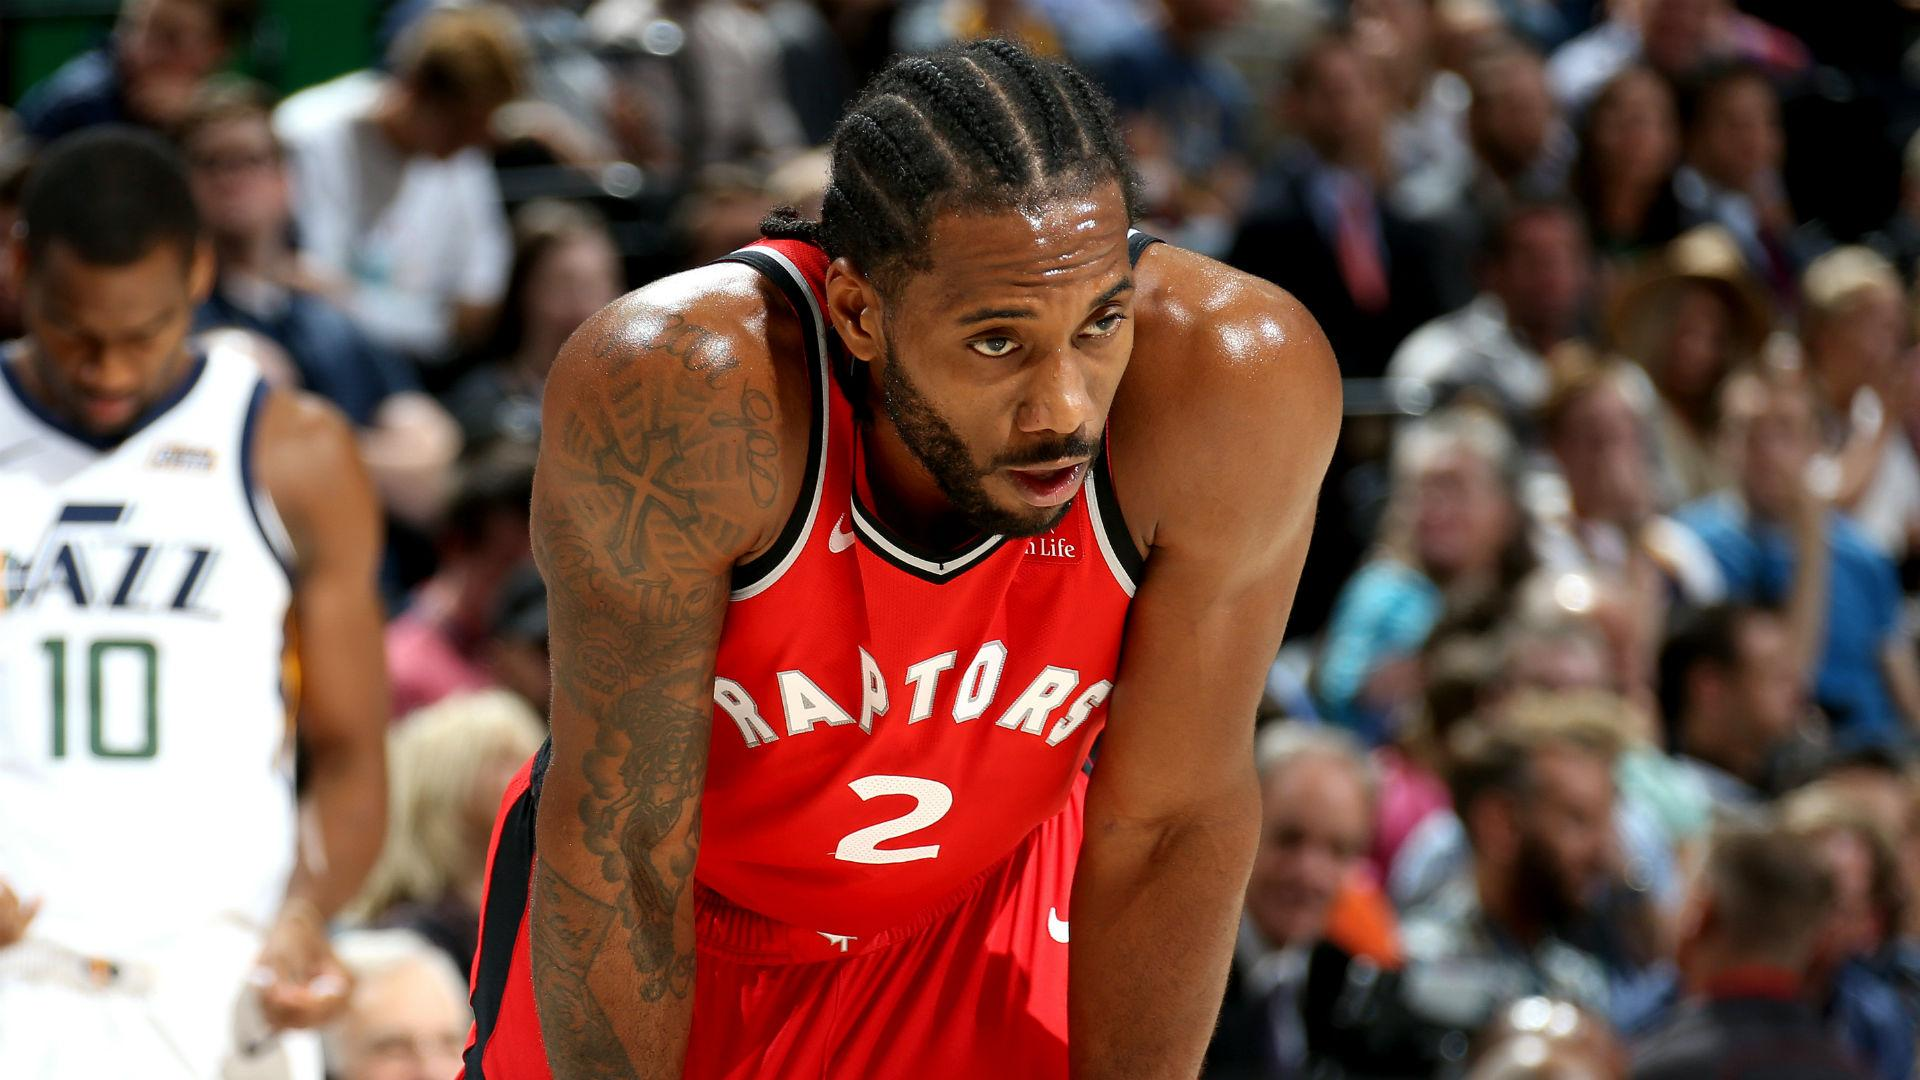 Five takeaways from Kawhi Leonard's second game with the Toronto